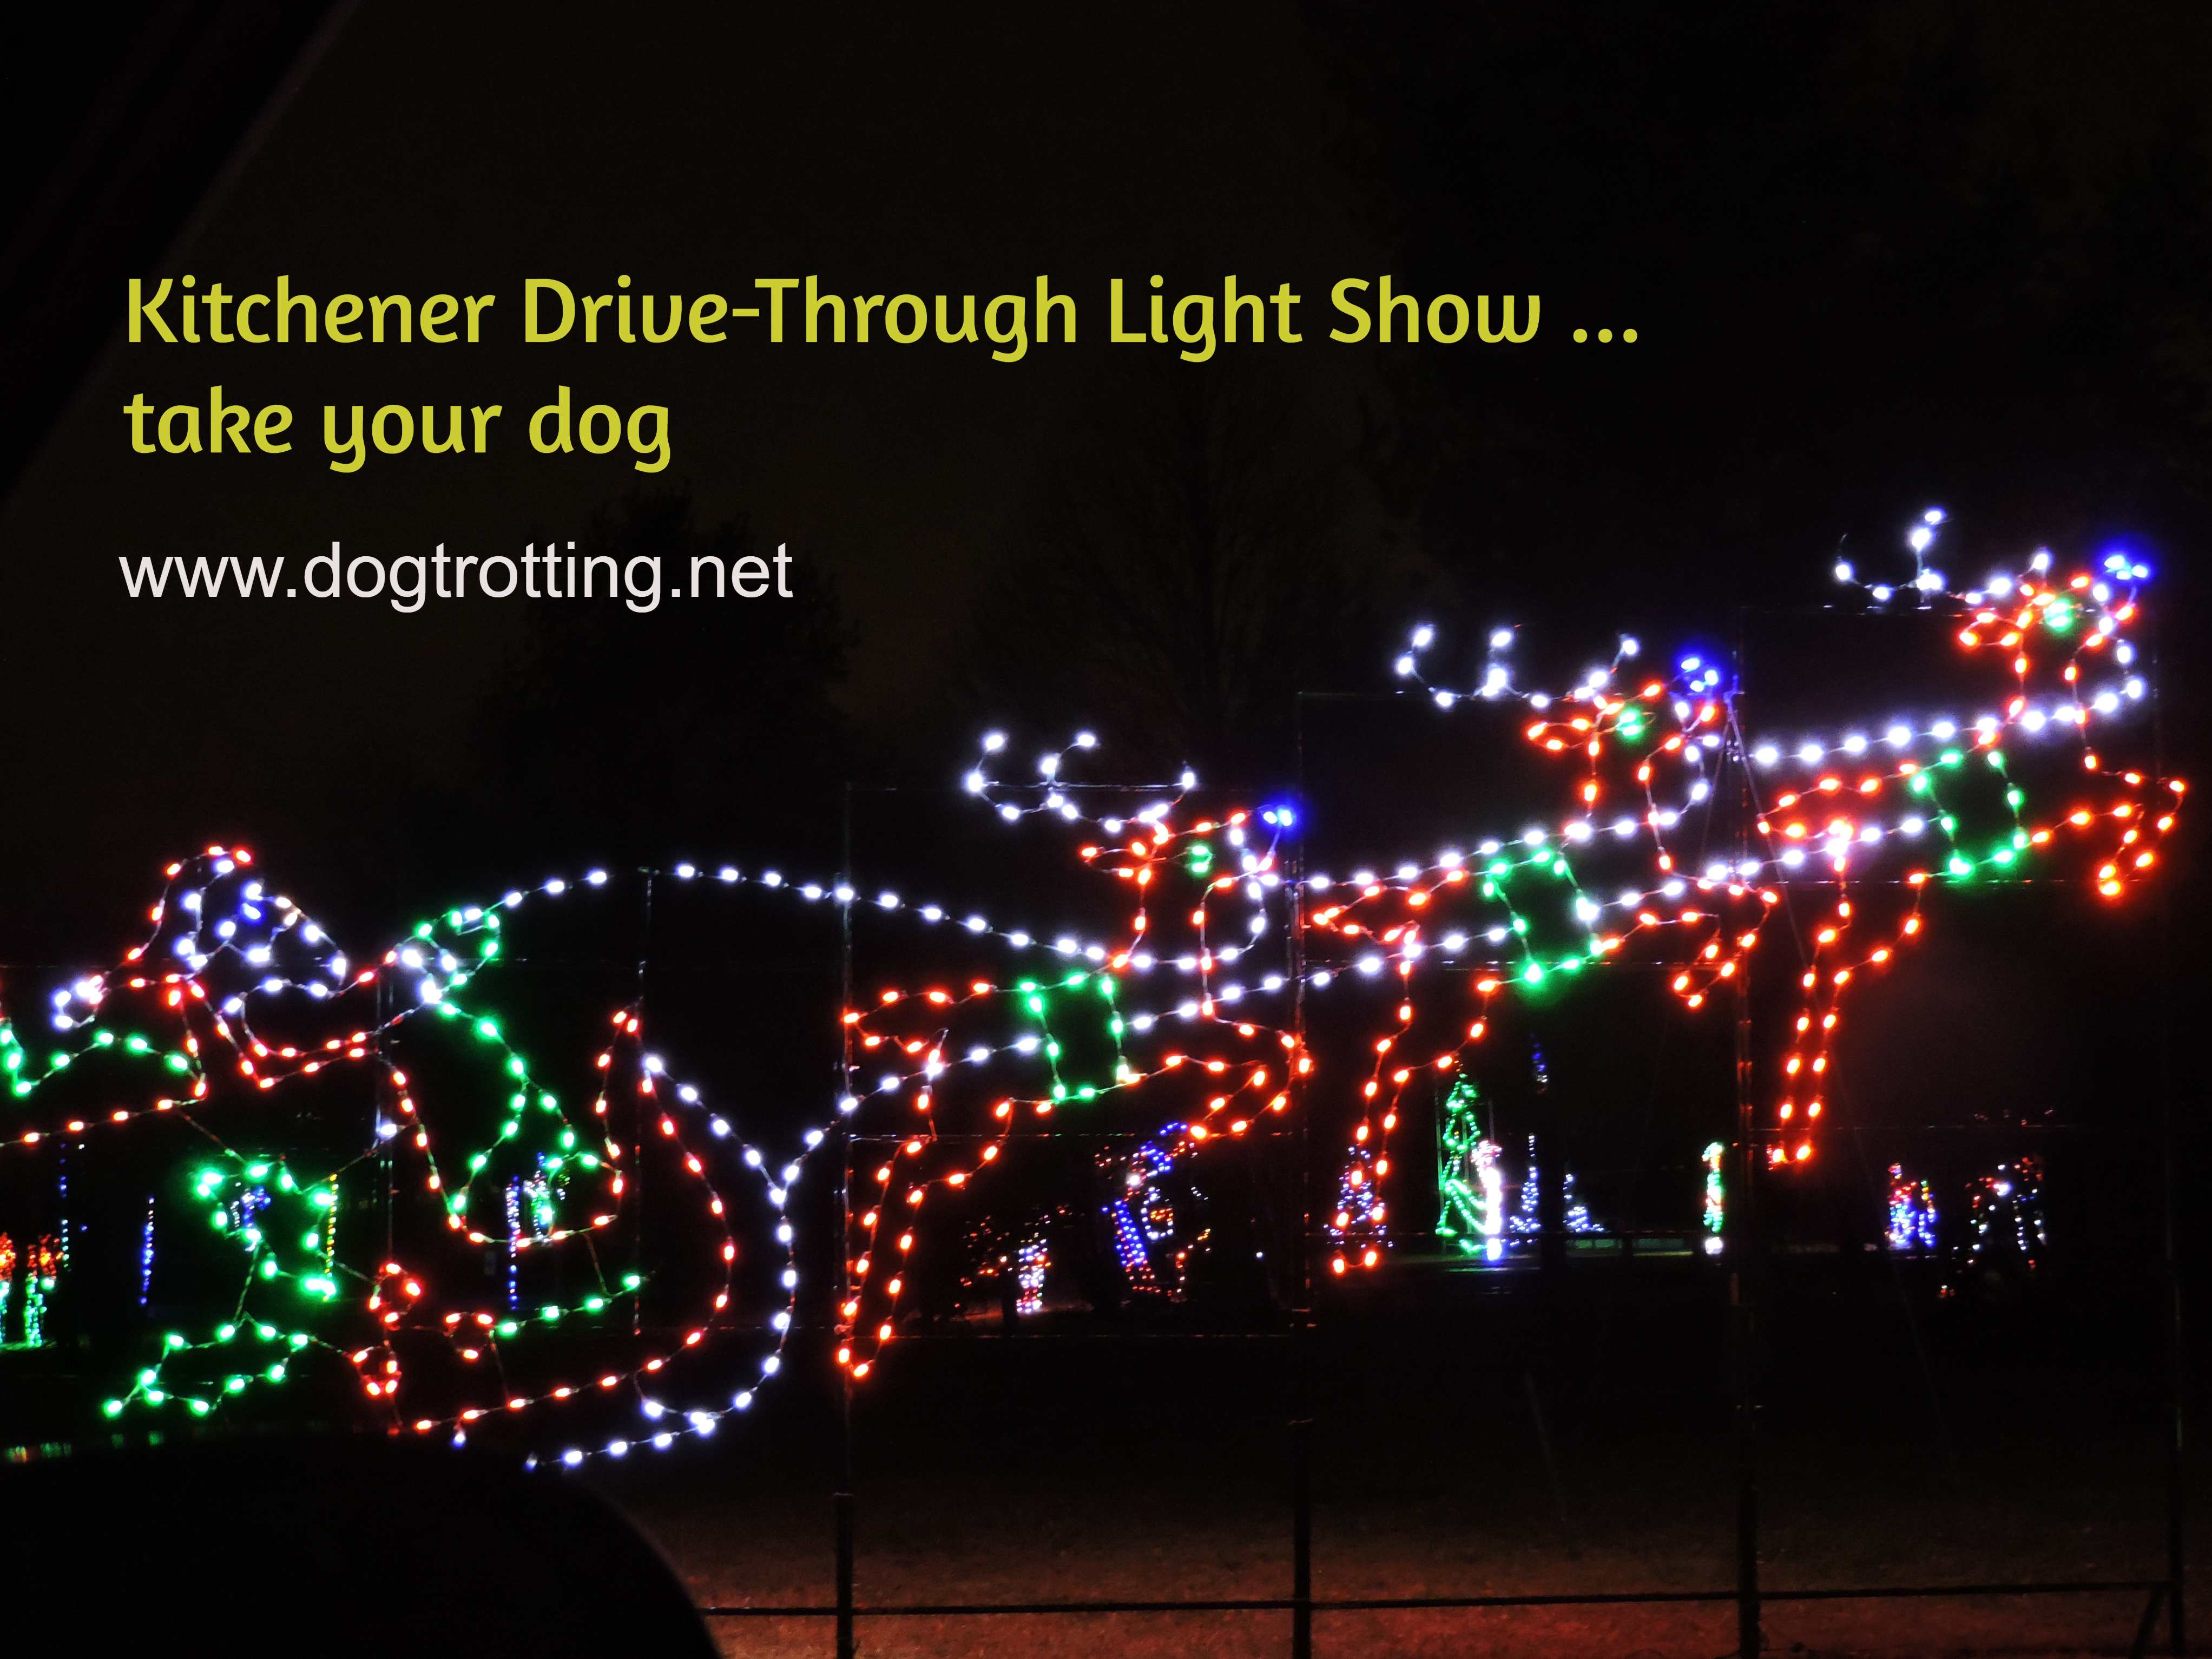 Christmas lights shapped like Santa and sleigh with text: Kitchener Drive-through light show - take your dog